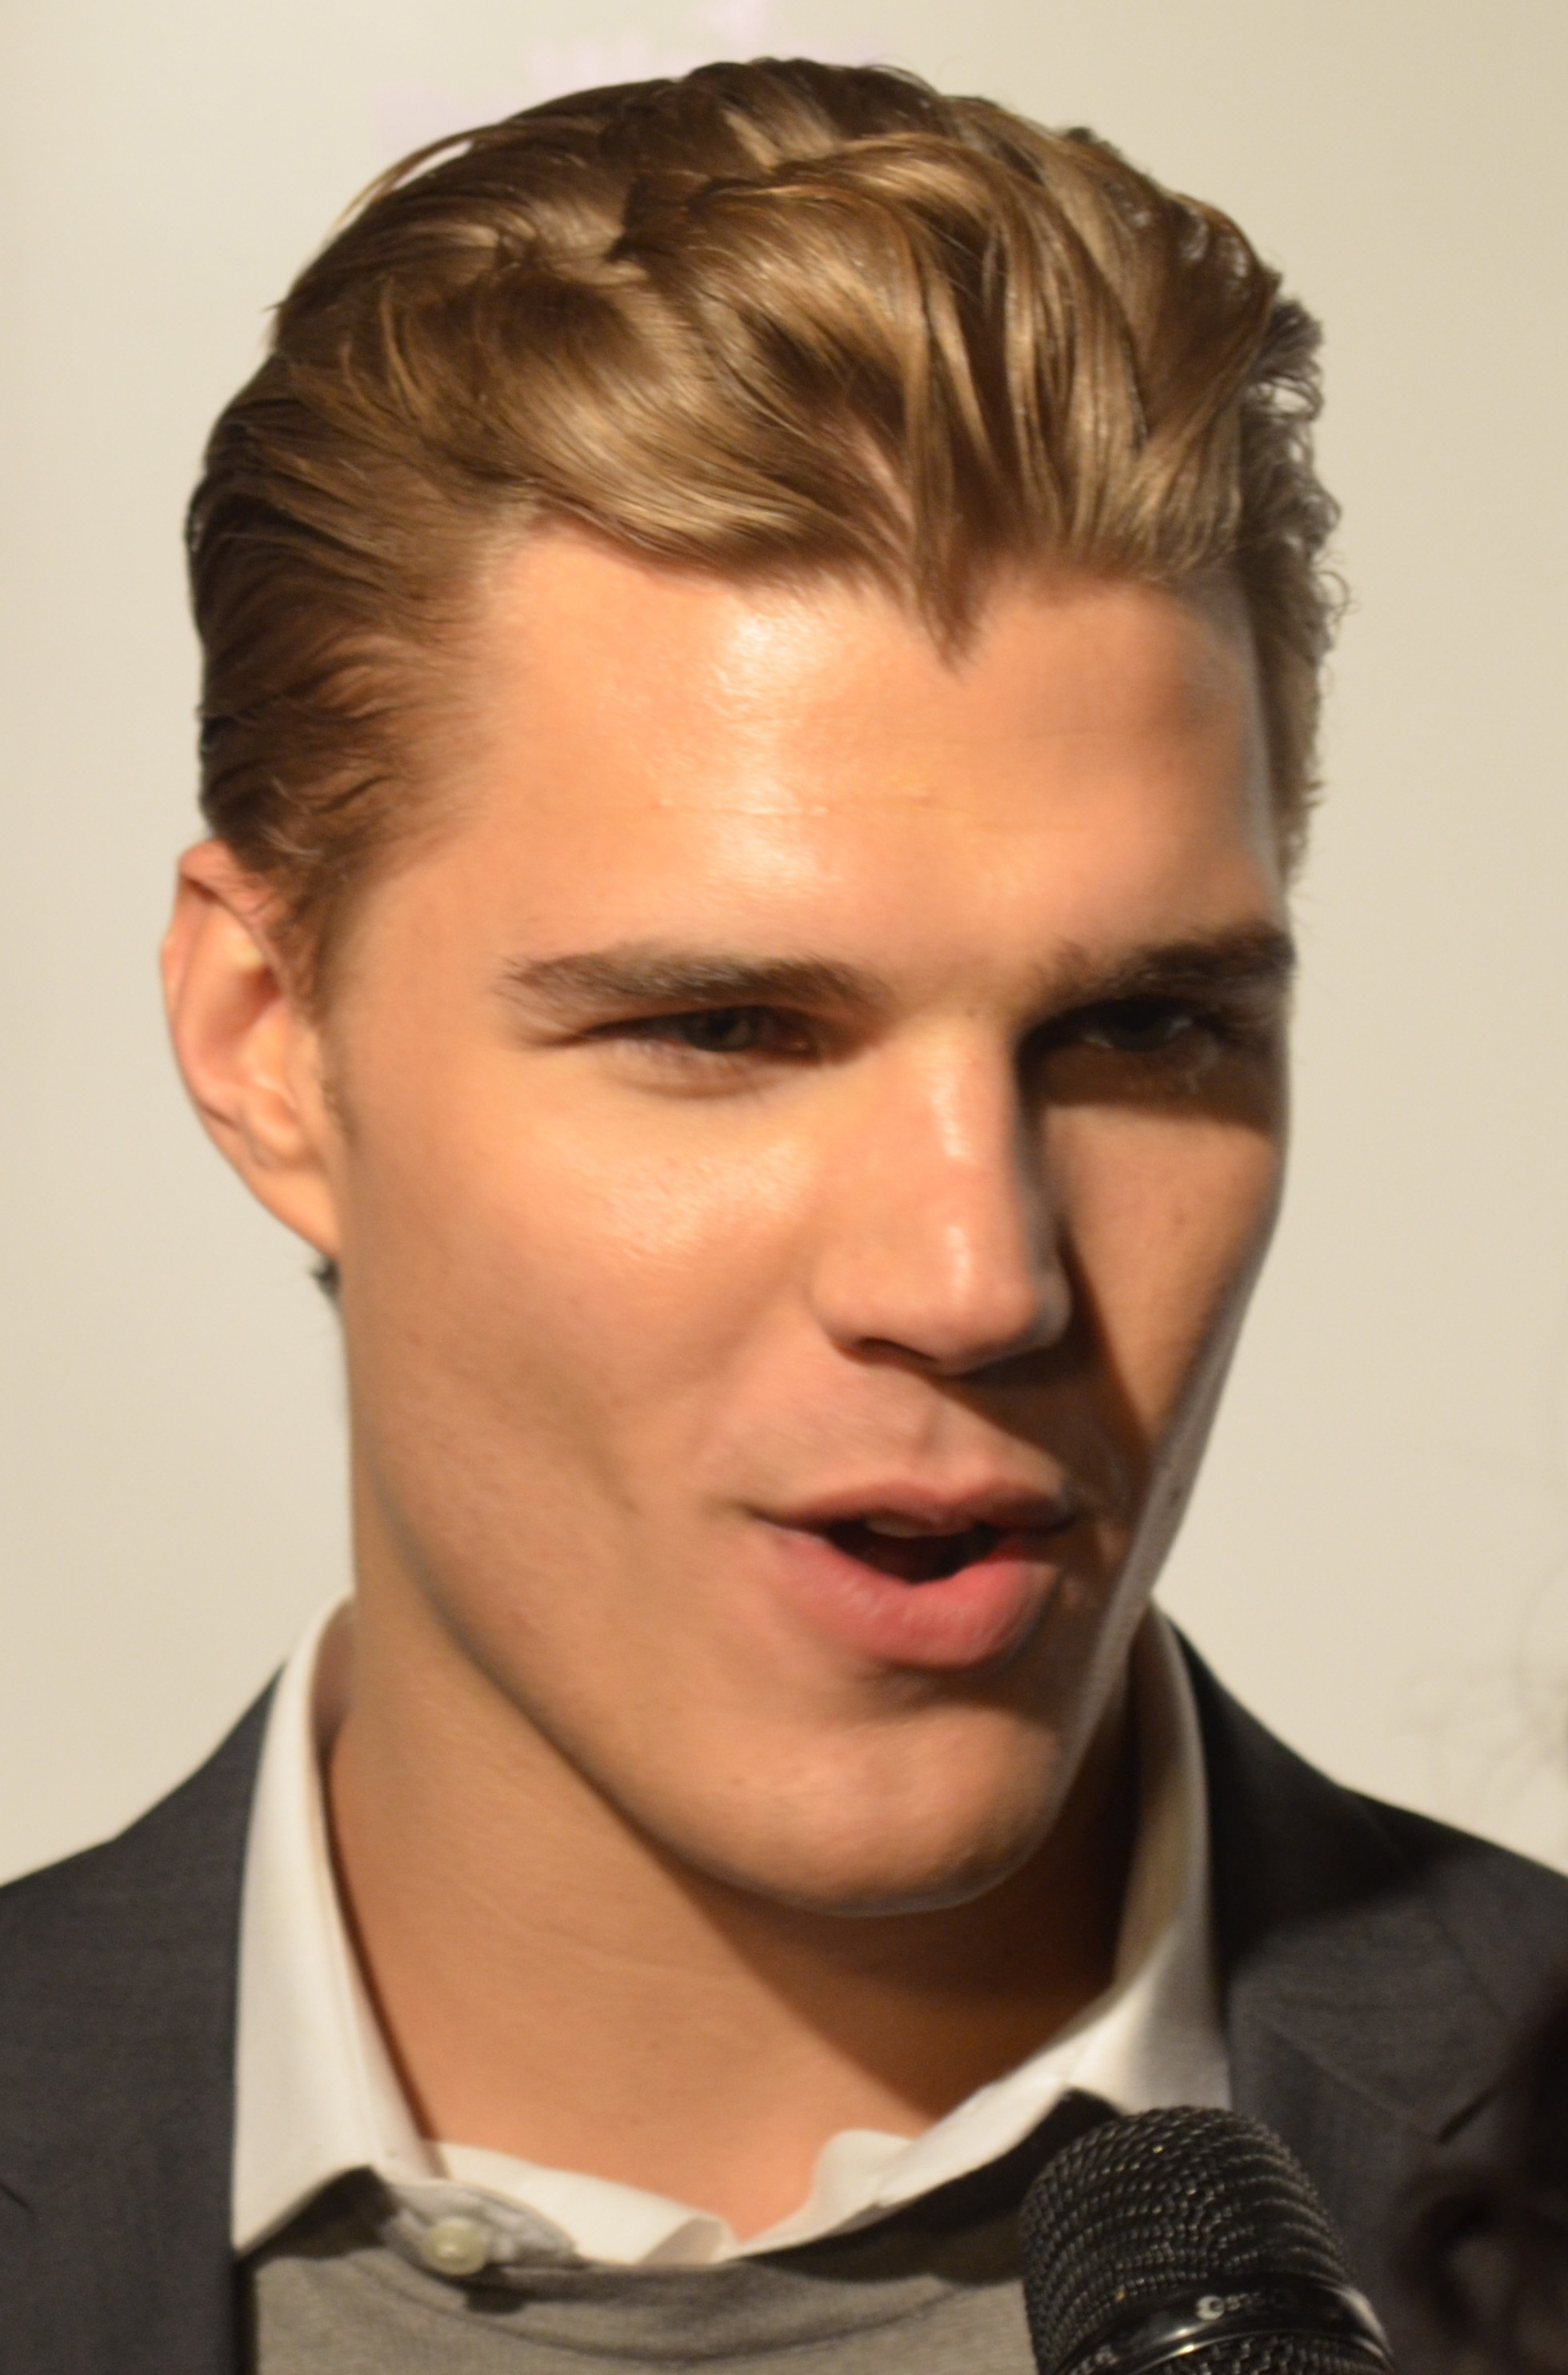 The 33-year old son of father Jet Samson and mother(?) Chris Zylka in 2018 photo. Chris Zylka earned a  million dollar salary - leaving the net worth at 1 million in 2018